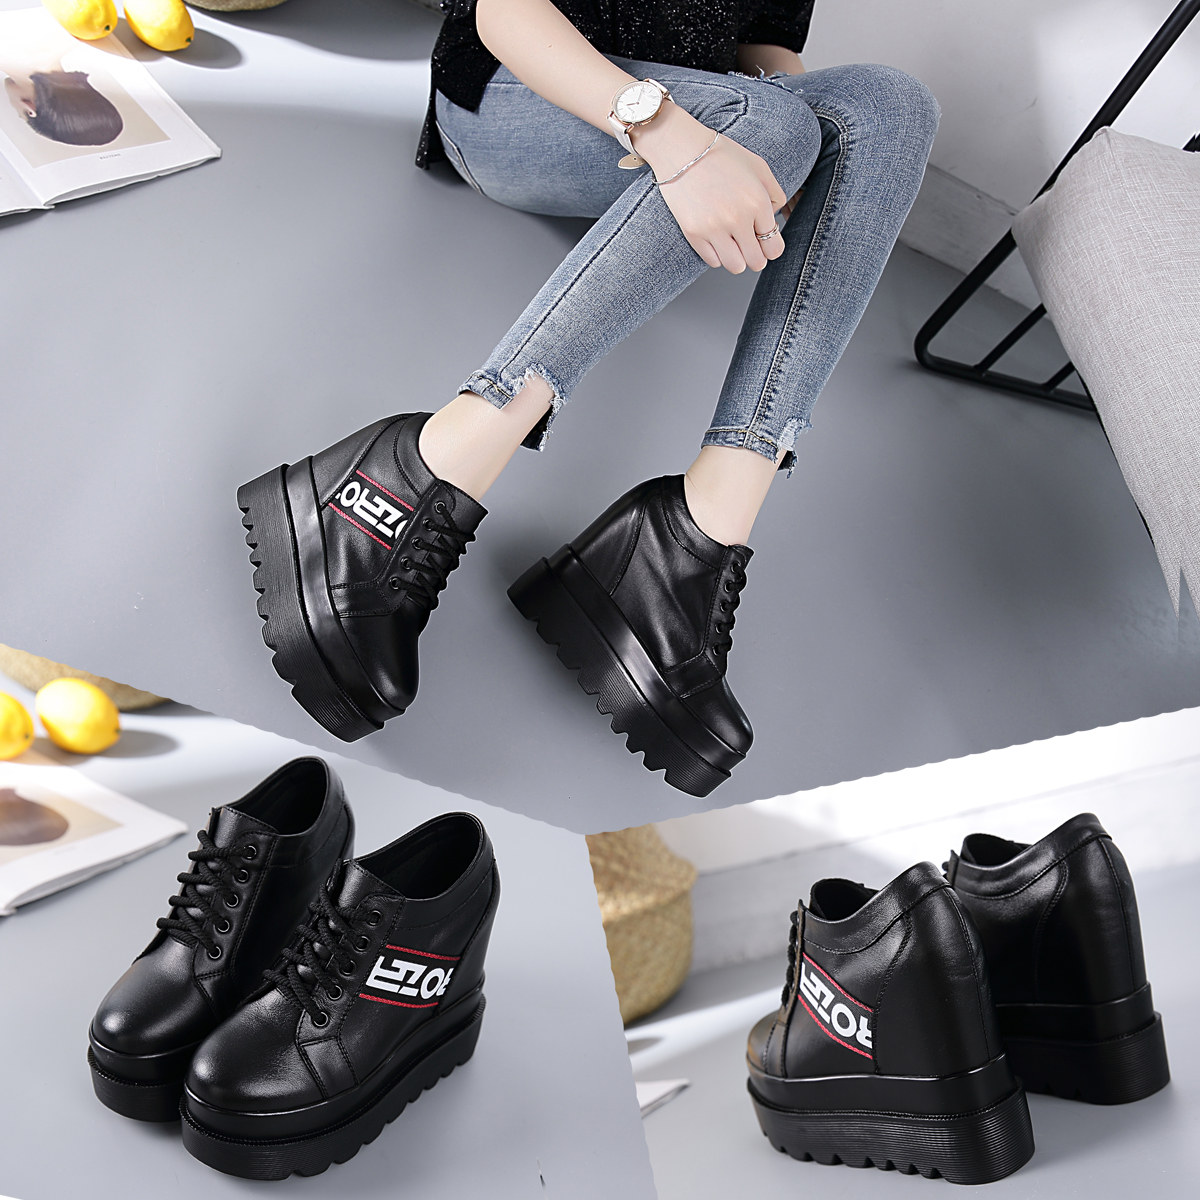 New style walking shoes for women in the autumn of 2018